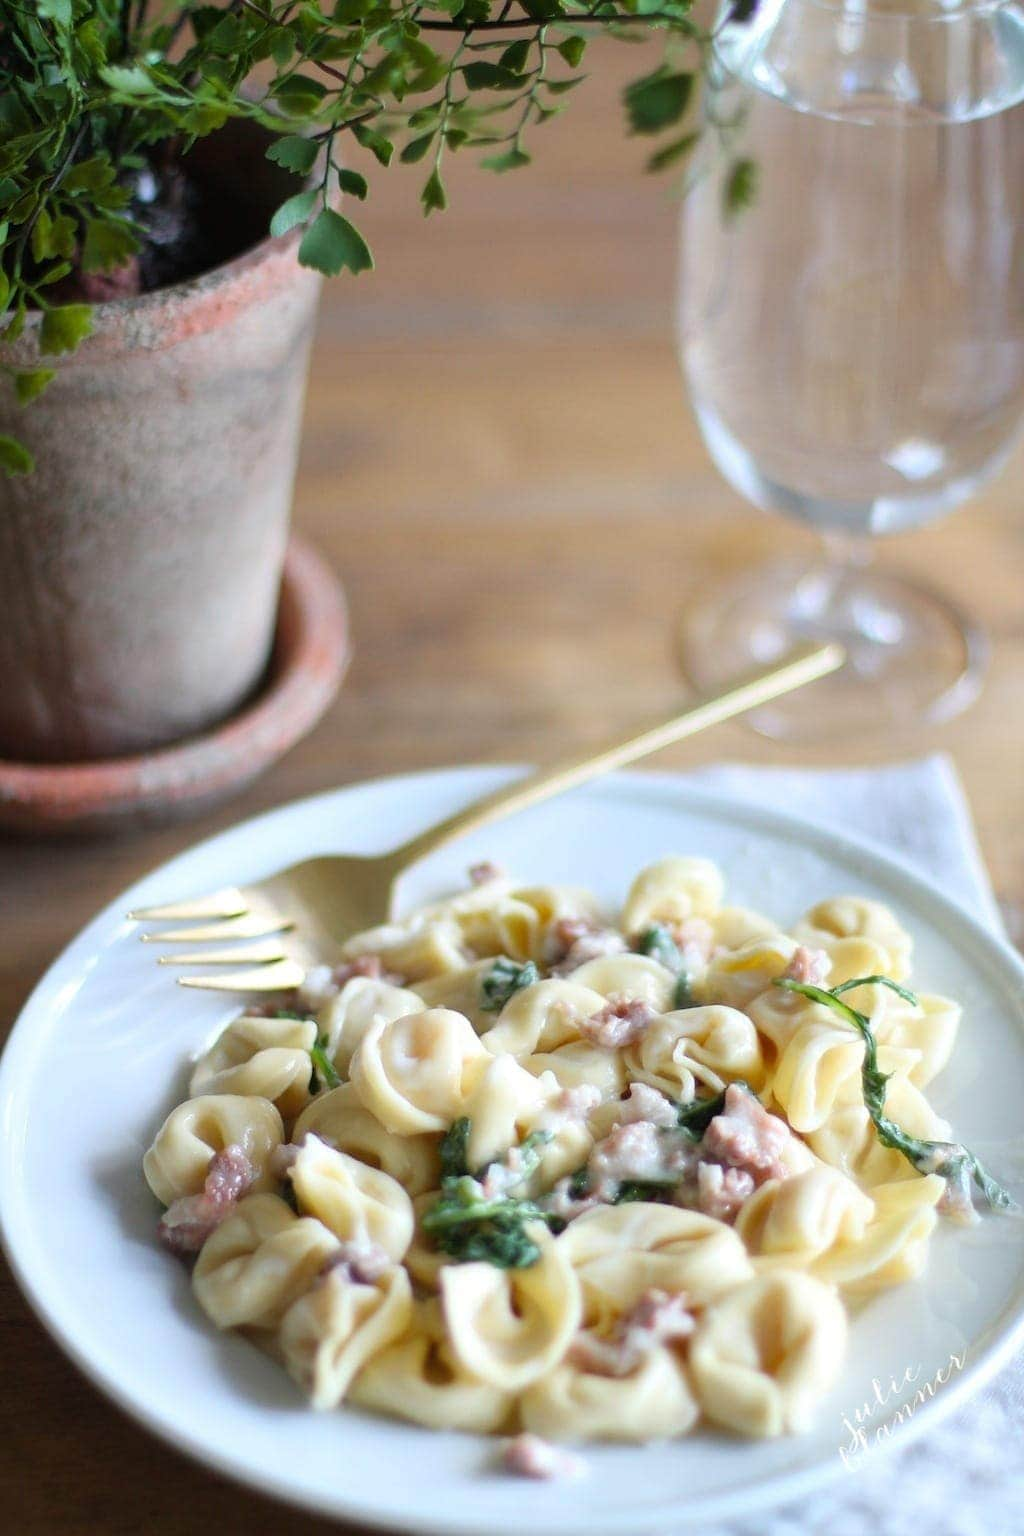 Quick, flavorful & balanced tortellacci recipe based off of Maggiano's popular dish